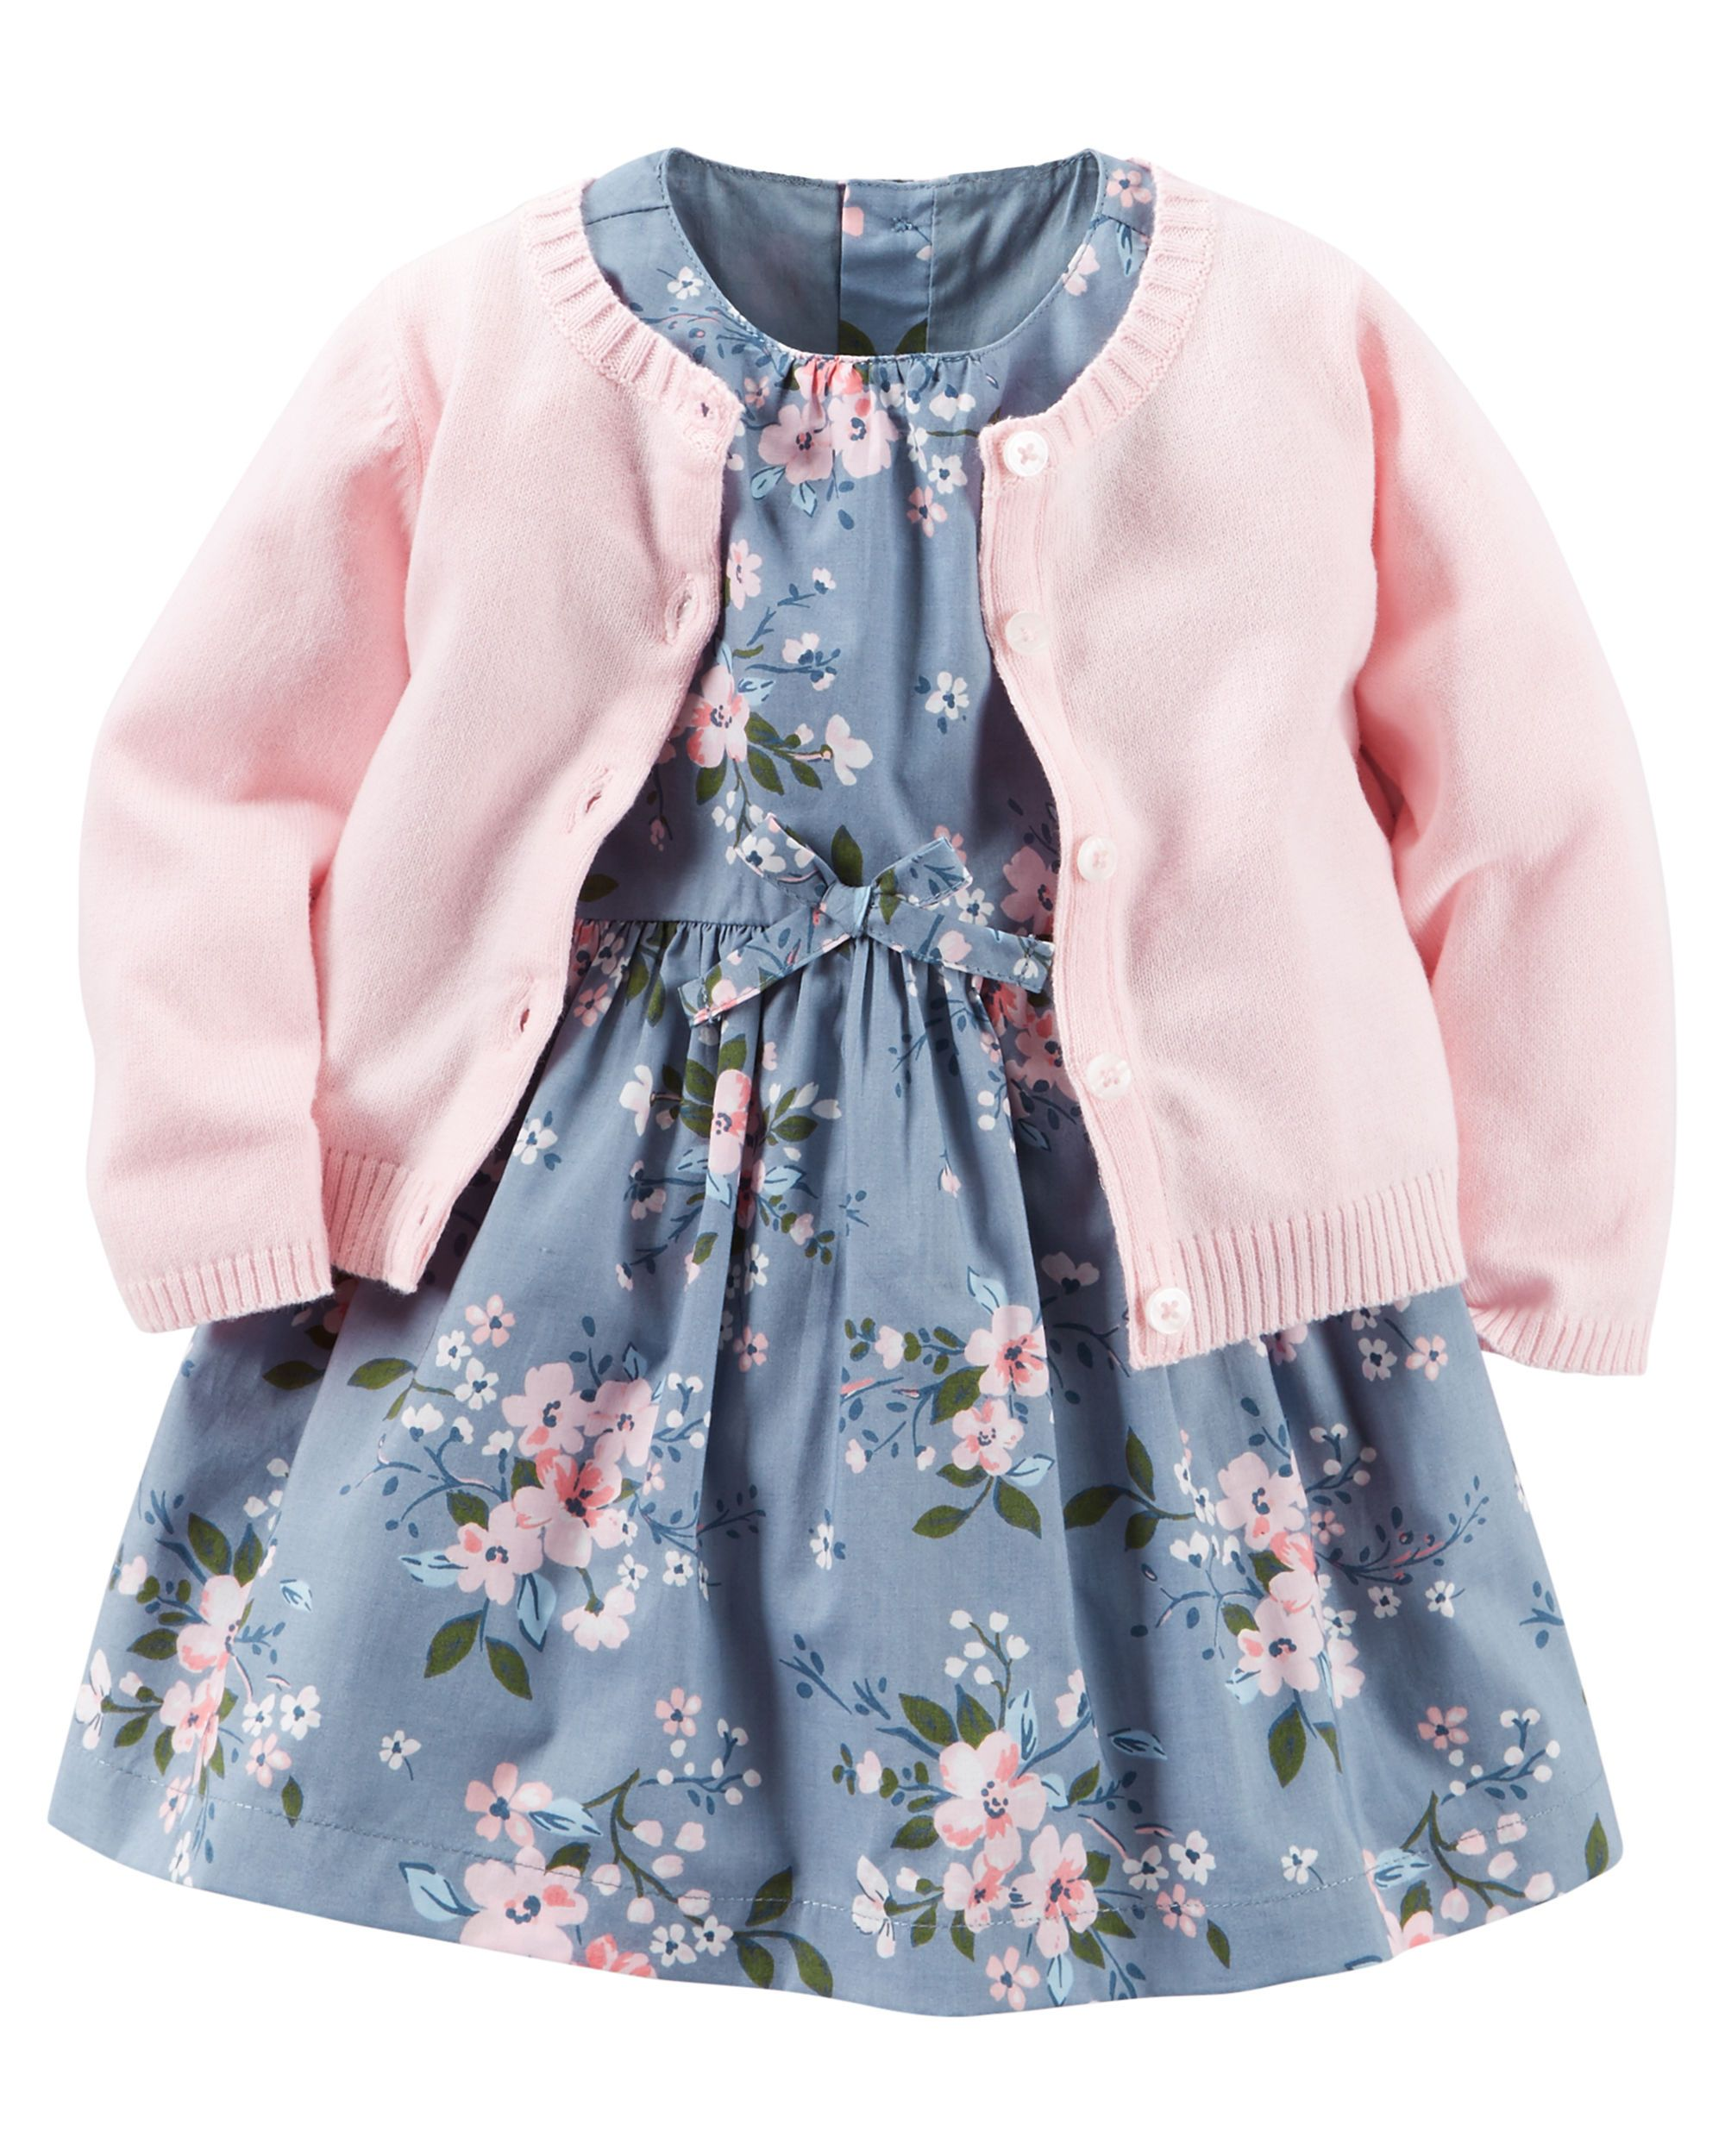 eb89922a20c1 2-Piece Dress   Cardigan Set